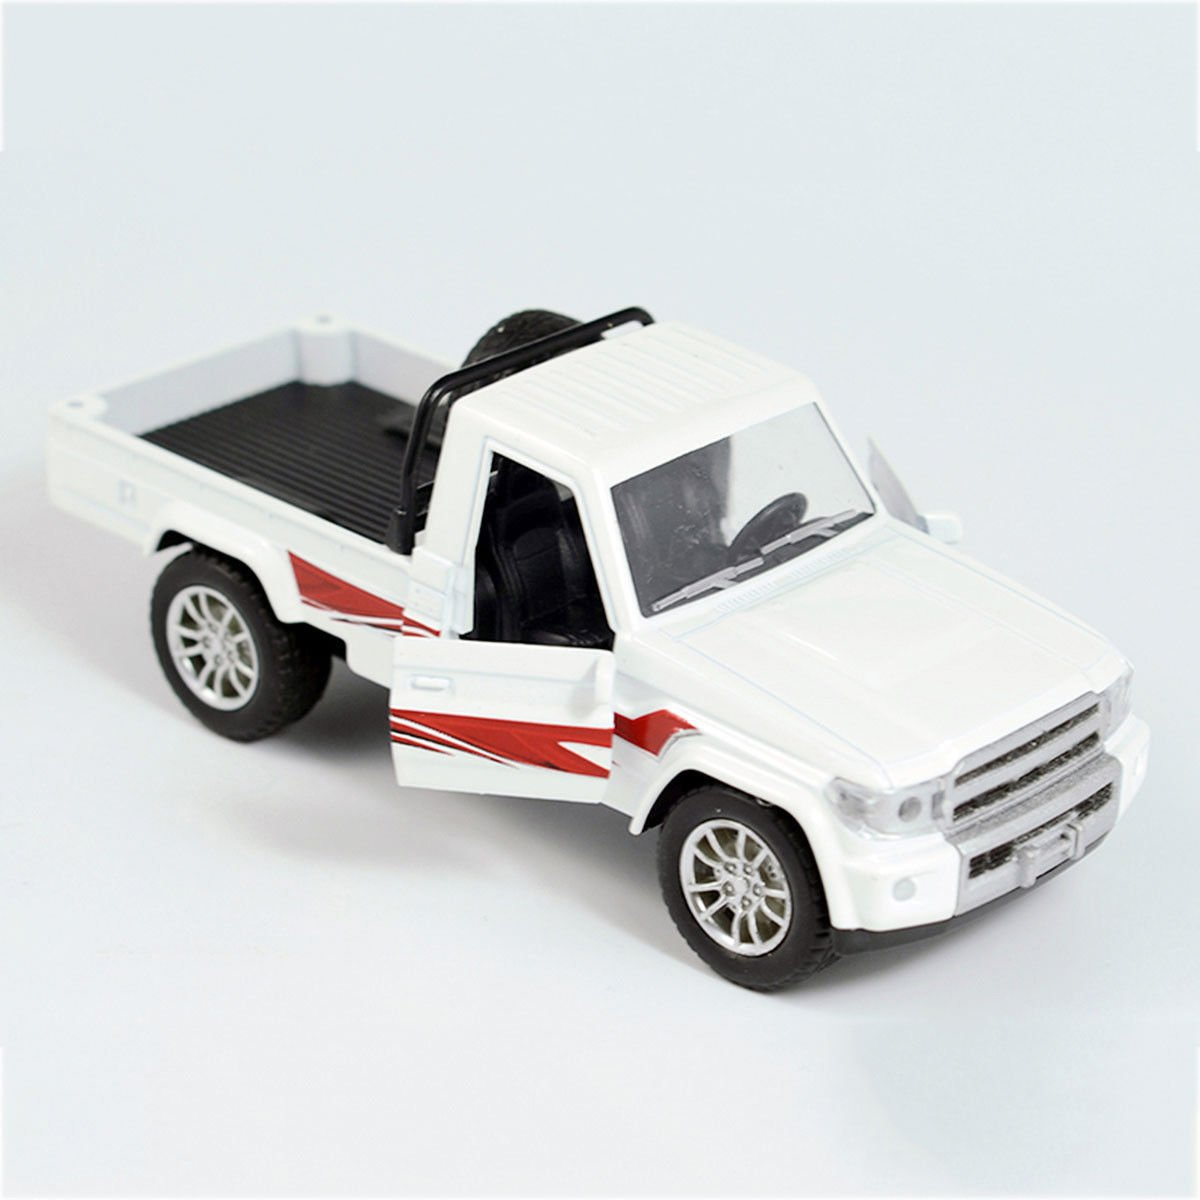 1:28 Military Force Army Pickup Off-road Vehicle Alloy Diecast Collectioon Kids